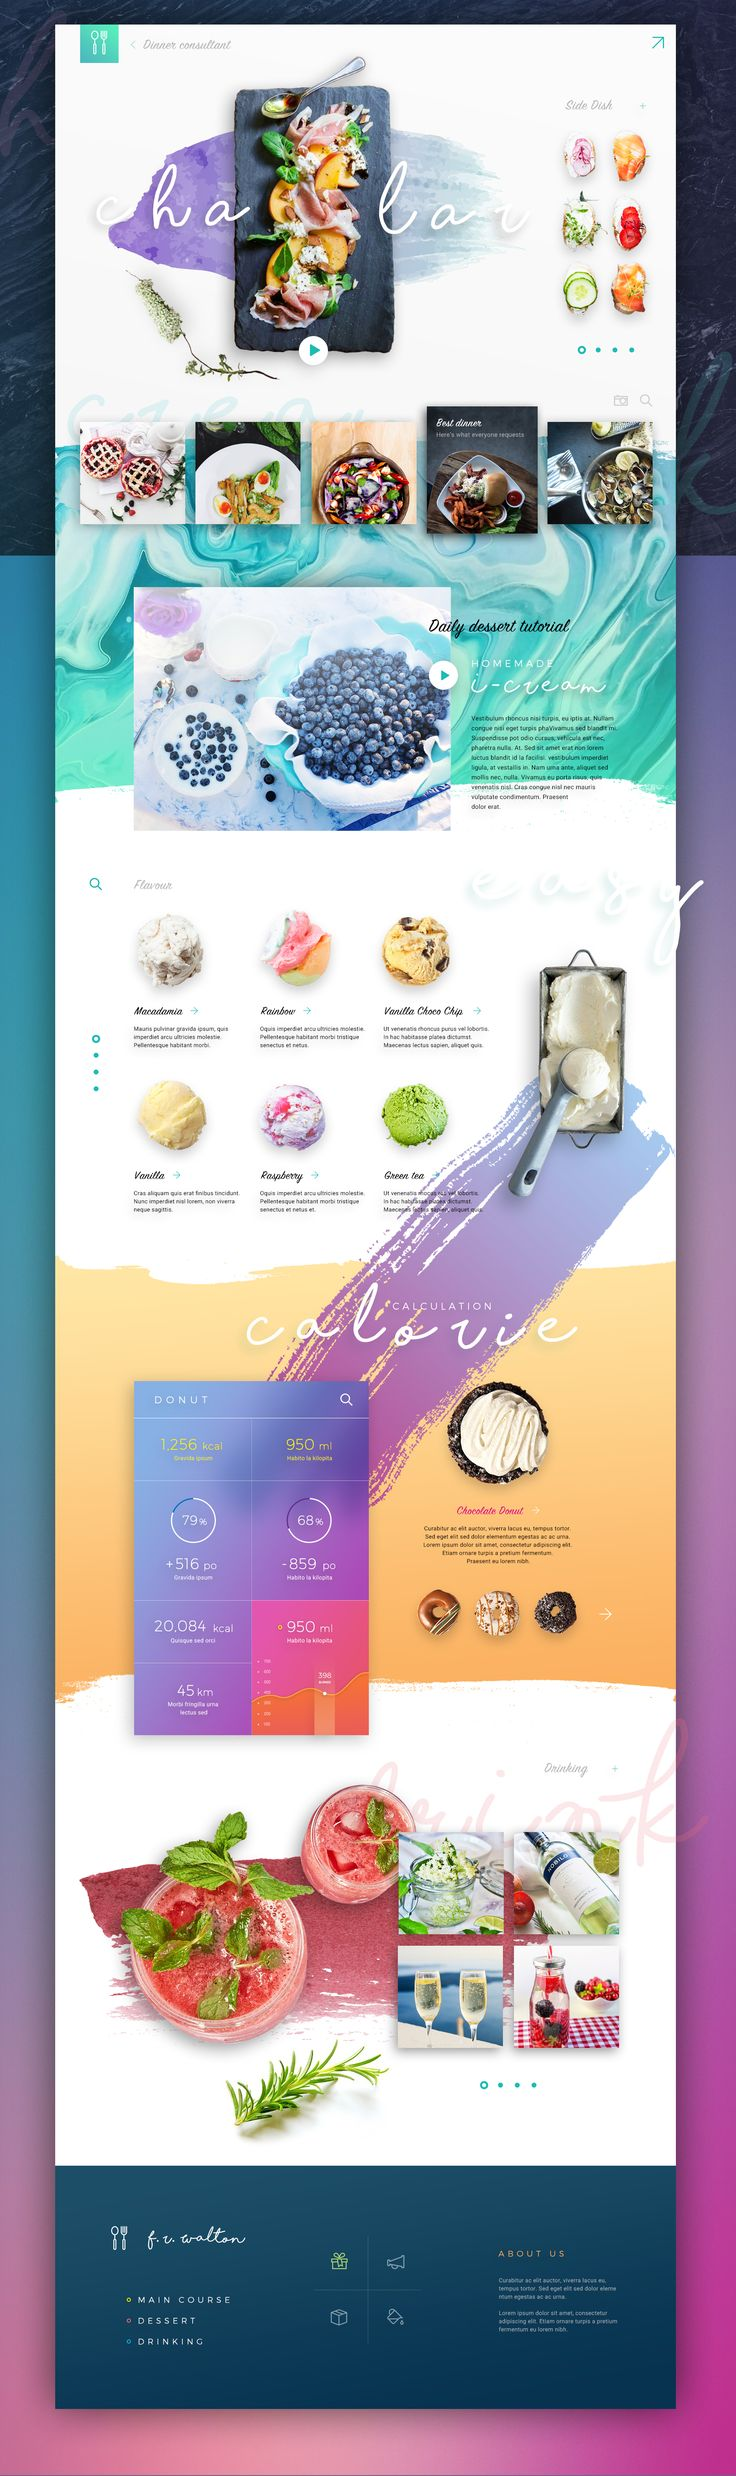 Website design from http://keithhoffart.weebly.com/contact.html Ice cream